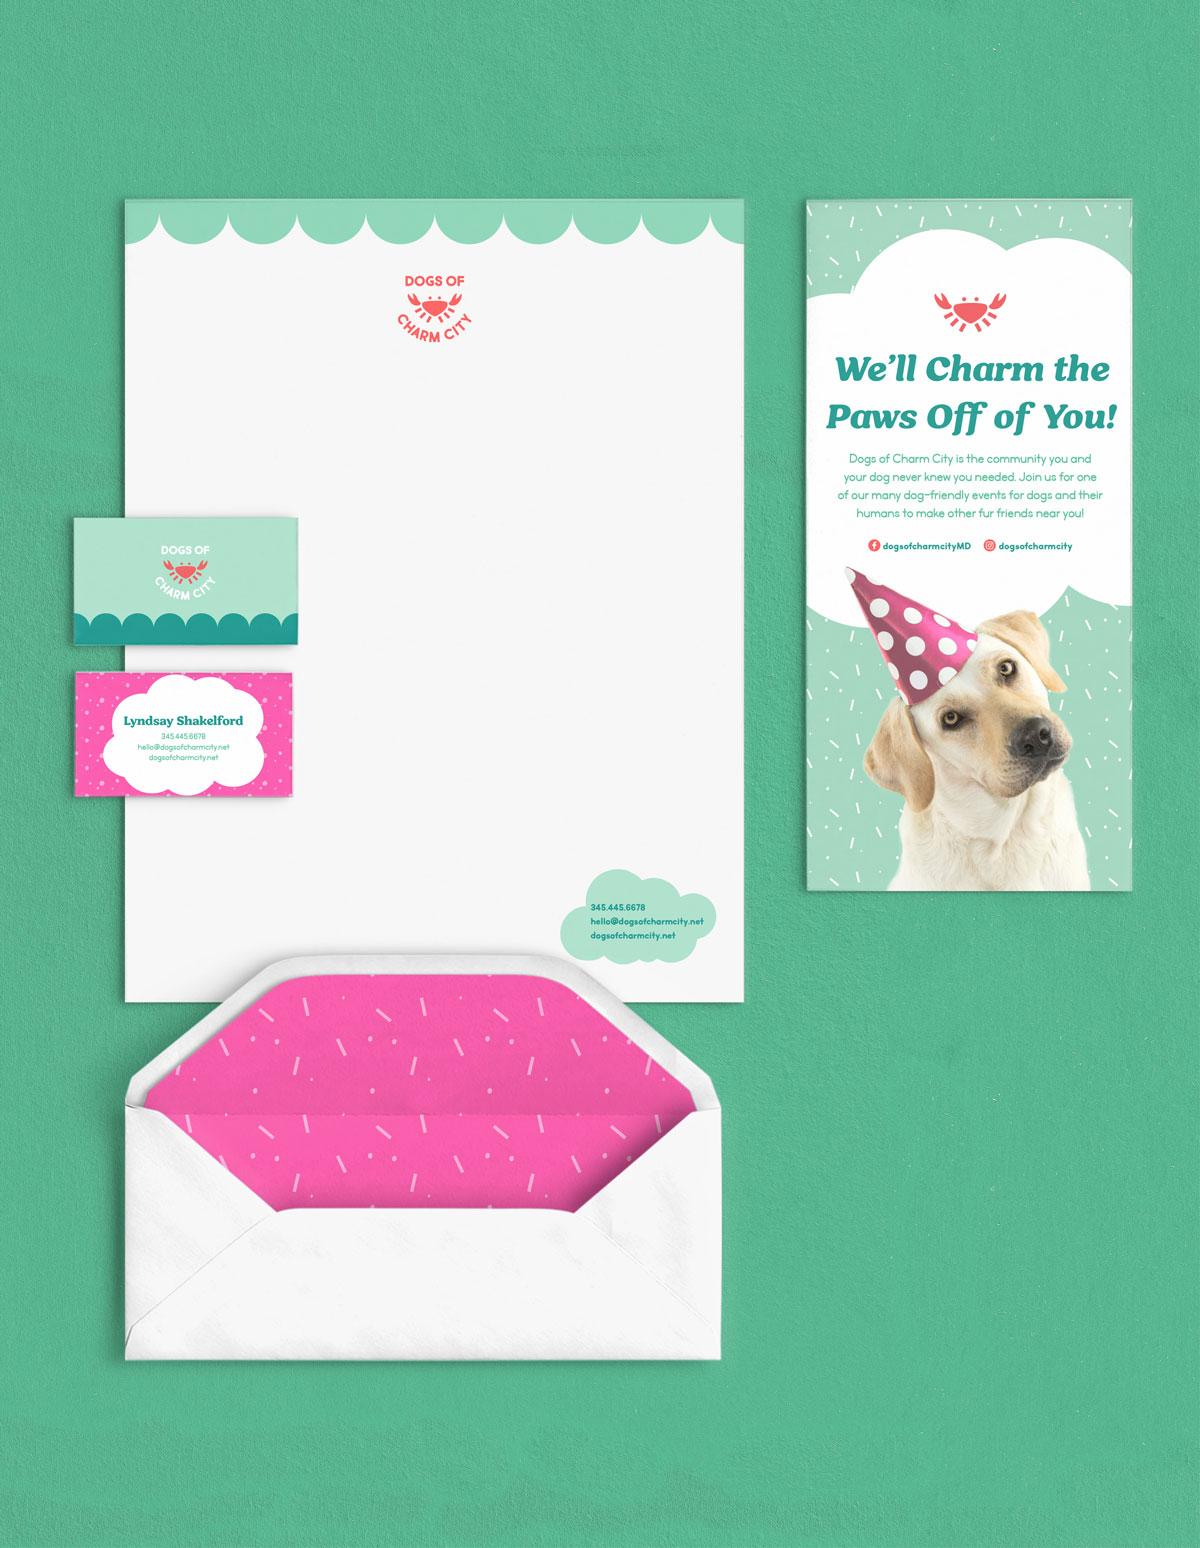 Dogs of Charm City letterhead, brochure, business cards, and envelope